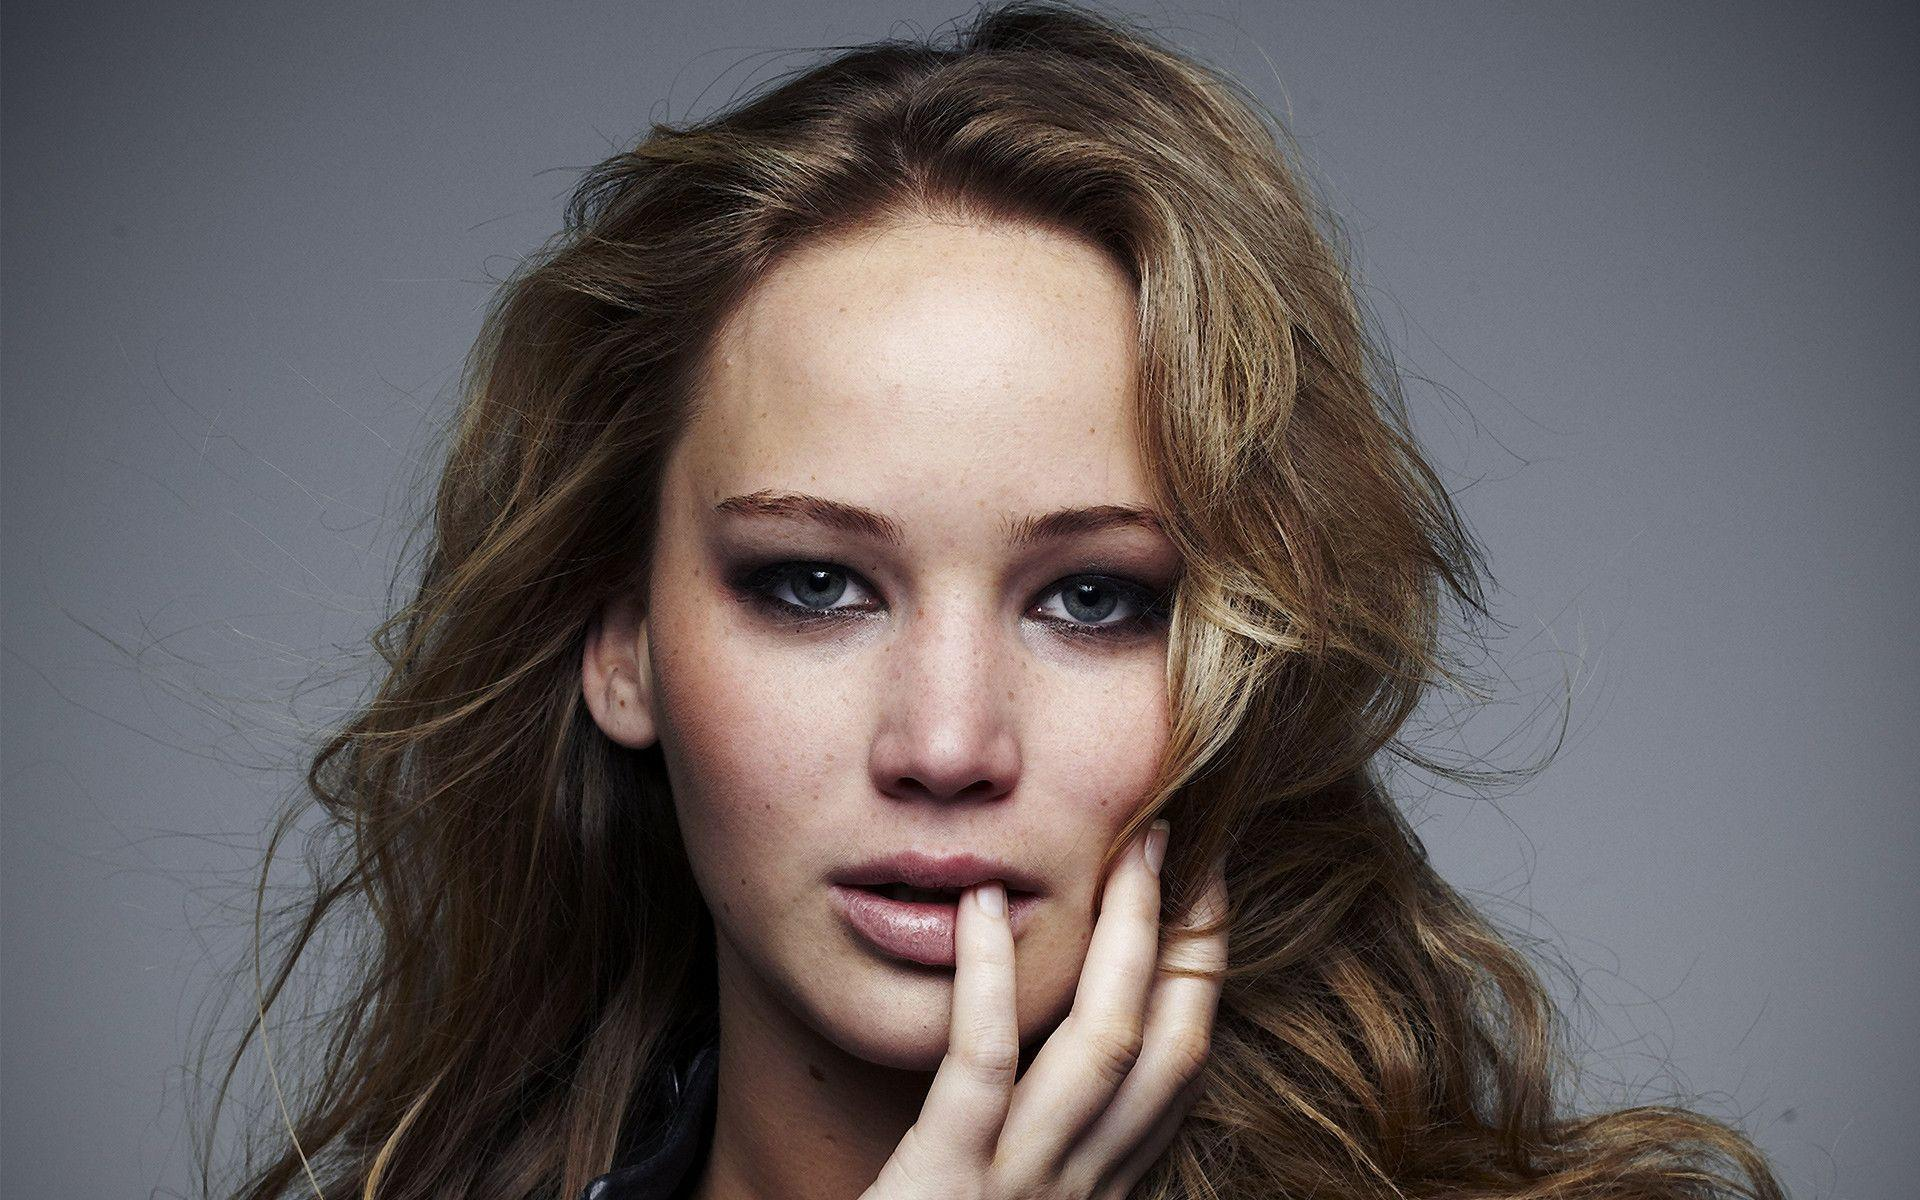 Jennifer Lawrence Wallpaper 39245 in Celebrities F - Telusers.